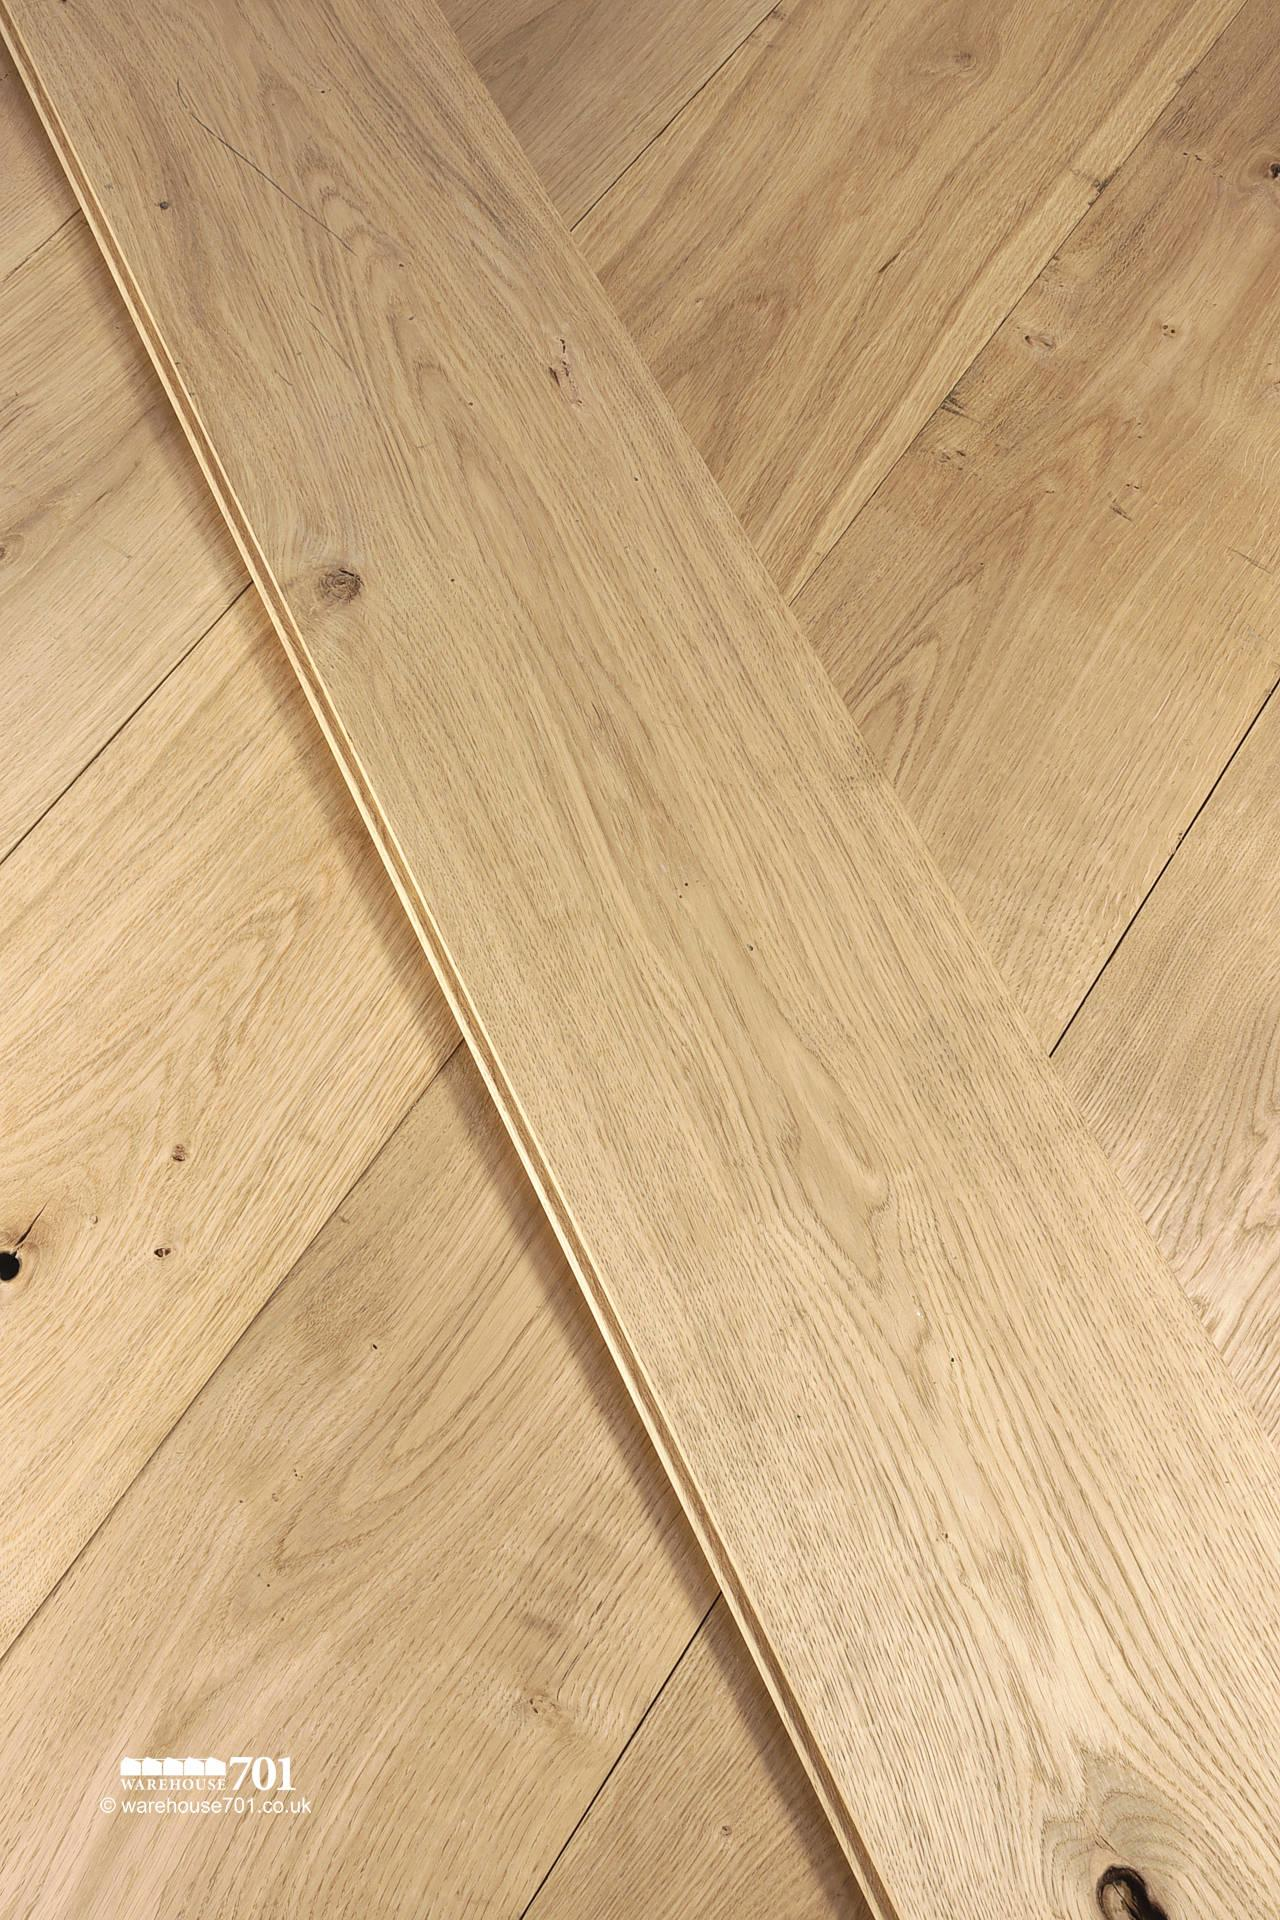 New Natural Oak Solid Wood Tongue and Groove Plank Flooring #2